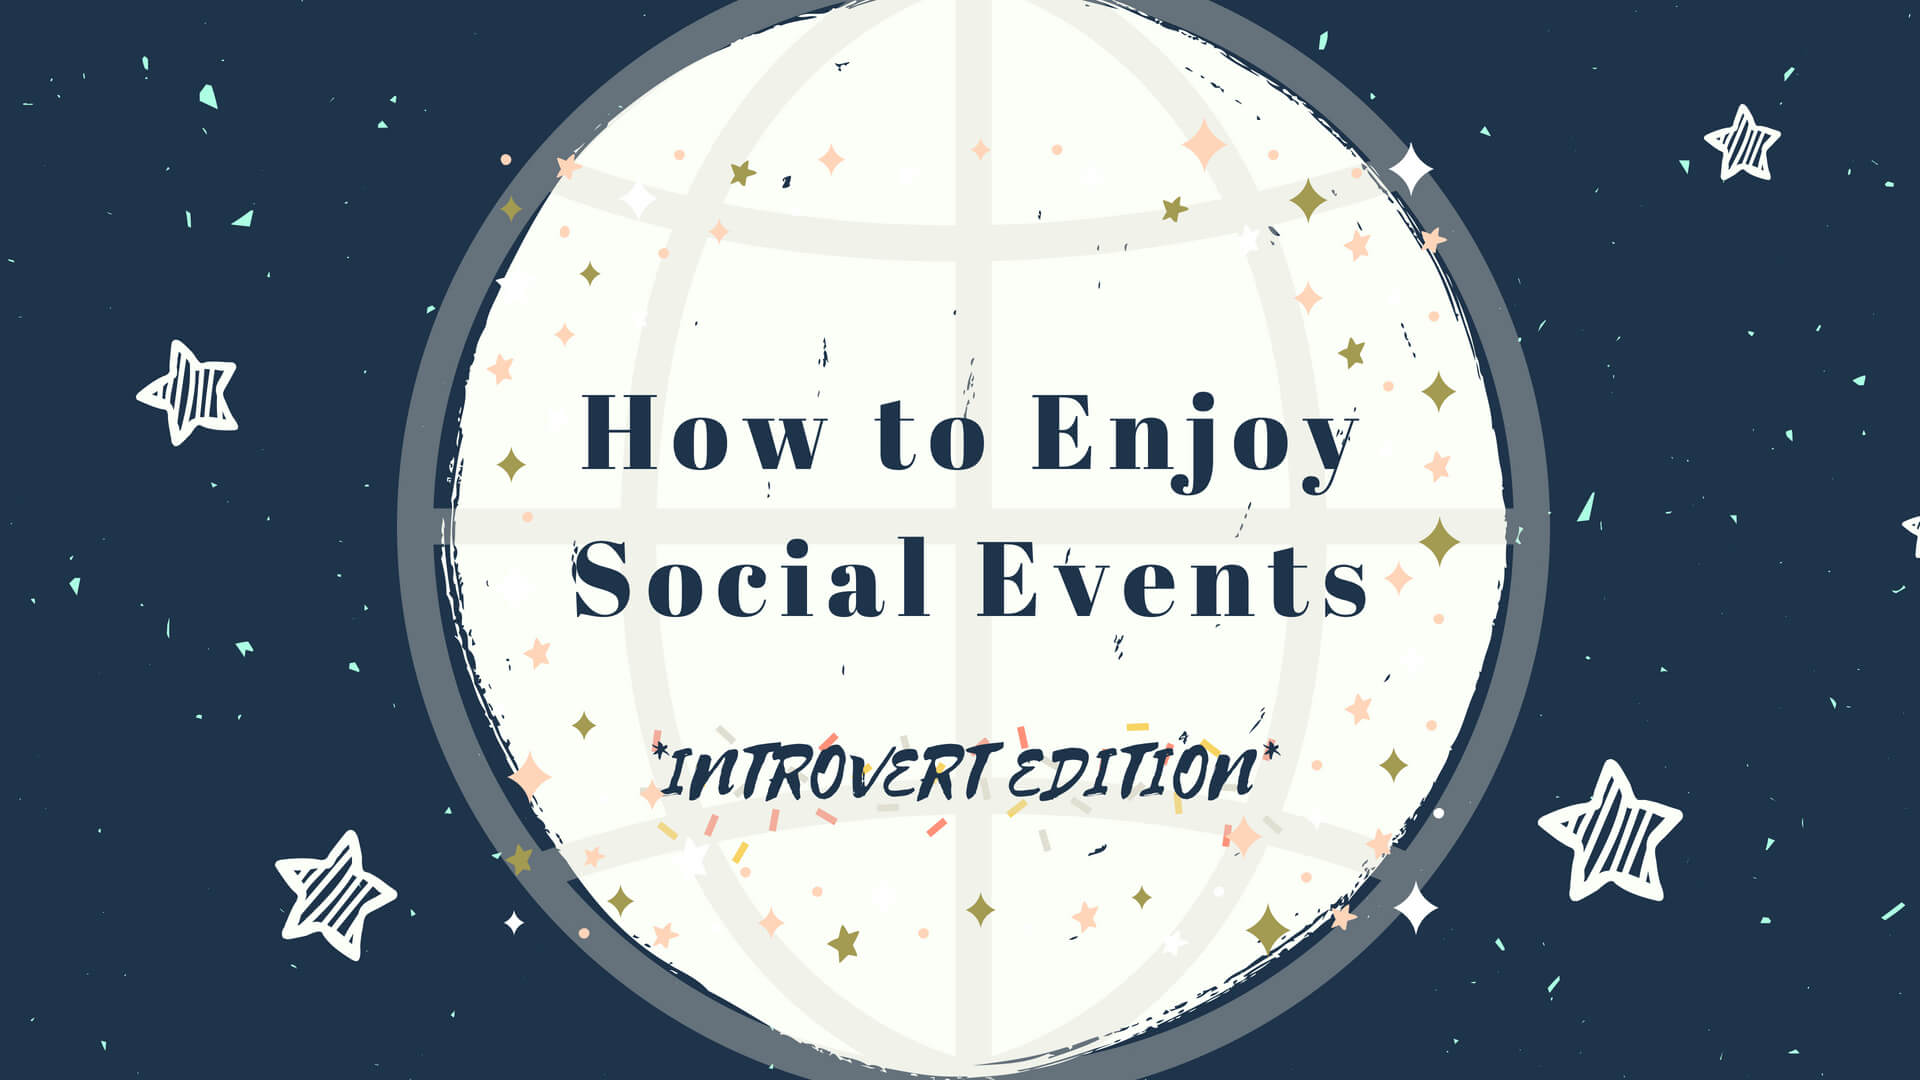 How to enjoy social events - Introvert Edition